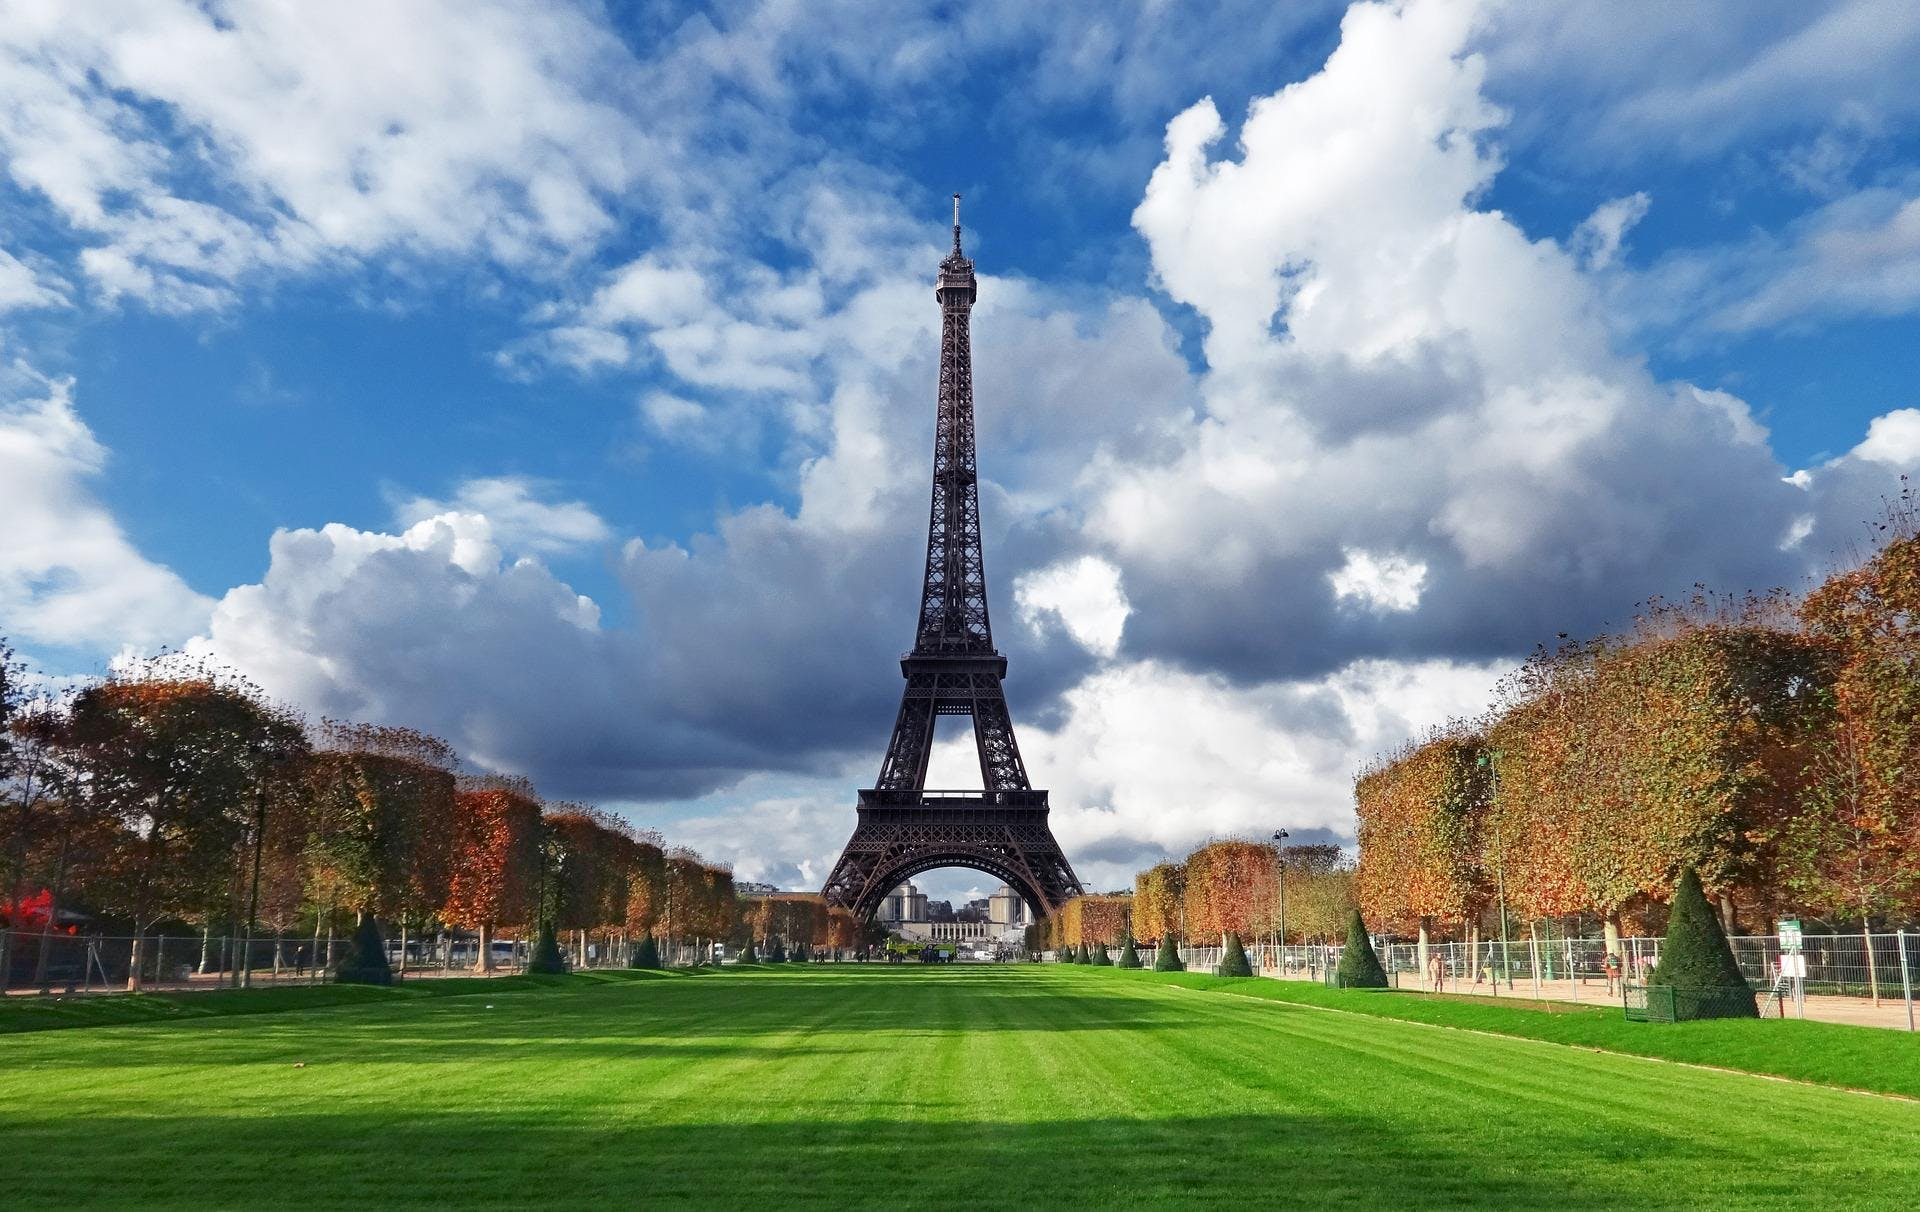 Fort Worth Singles! Let's Meet in Paris - Fall Edition for Singles Only